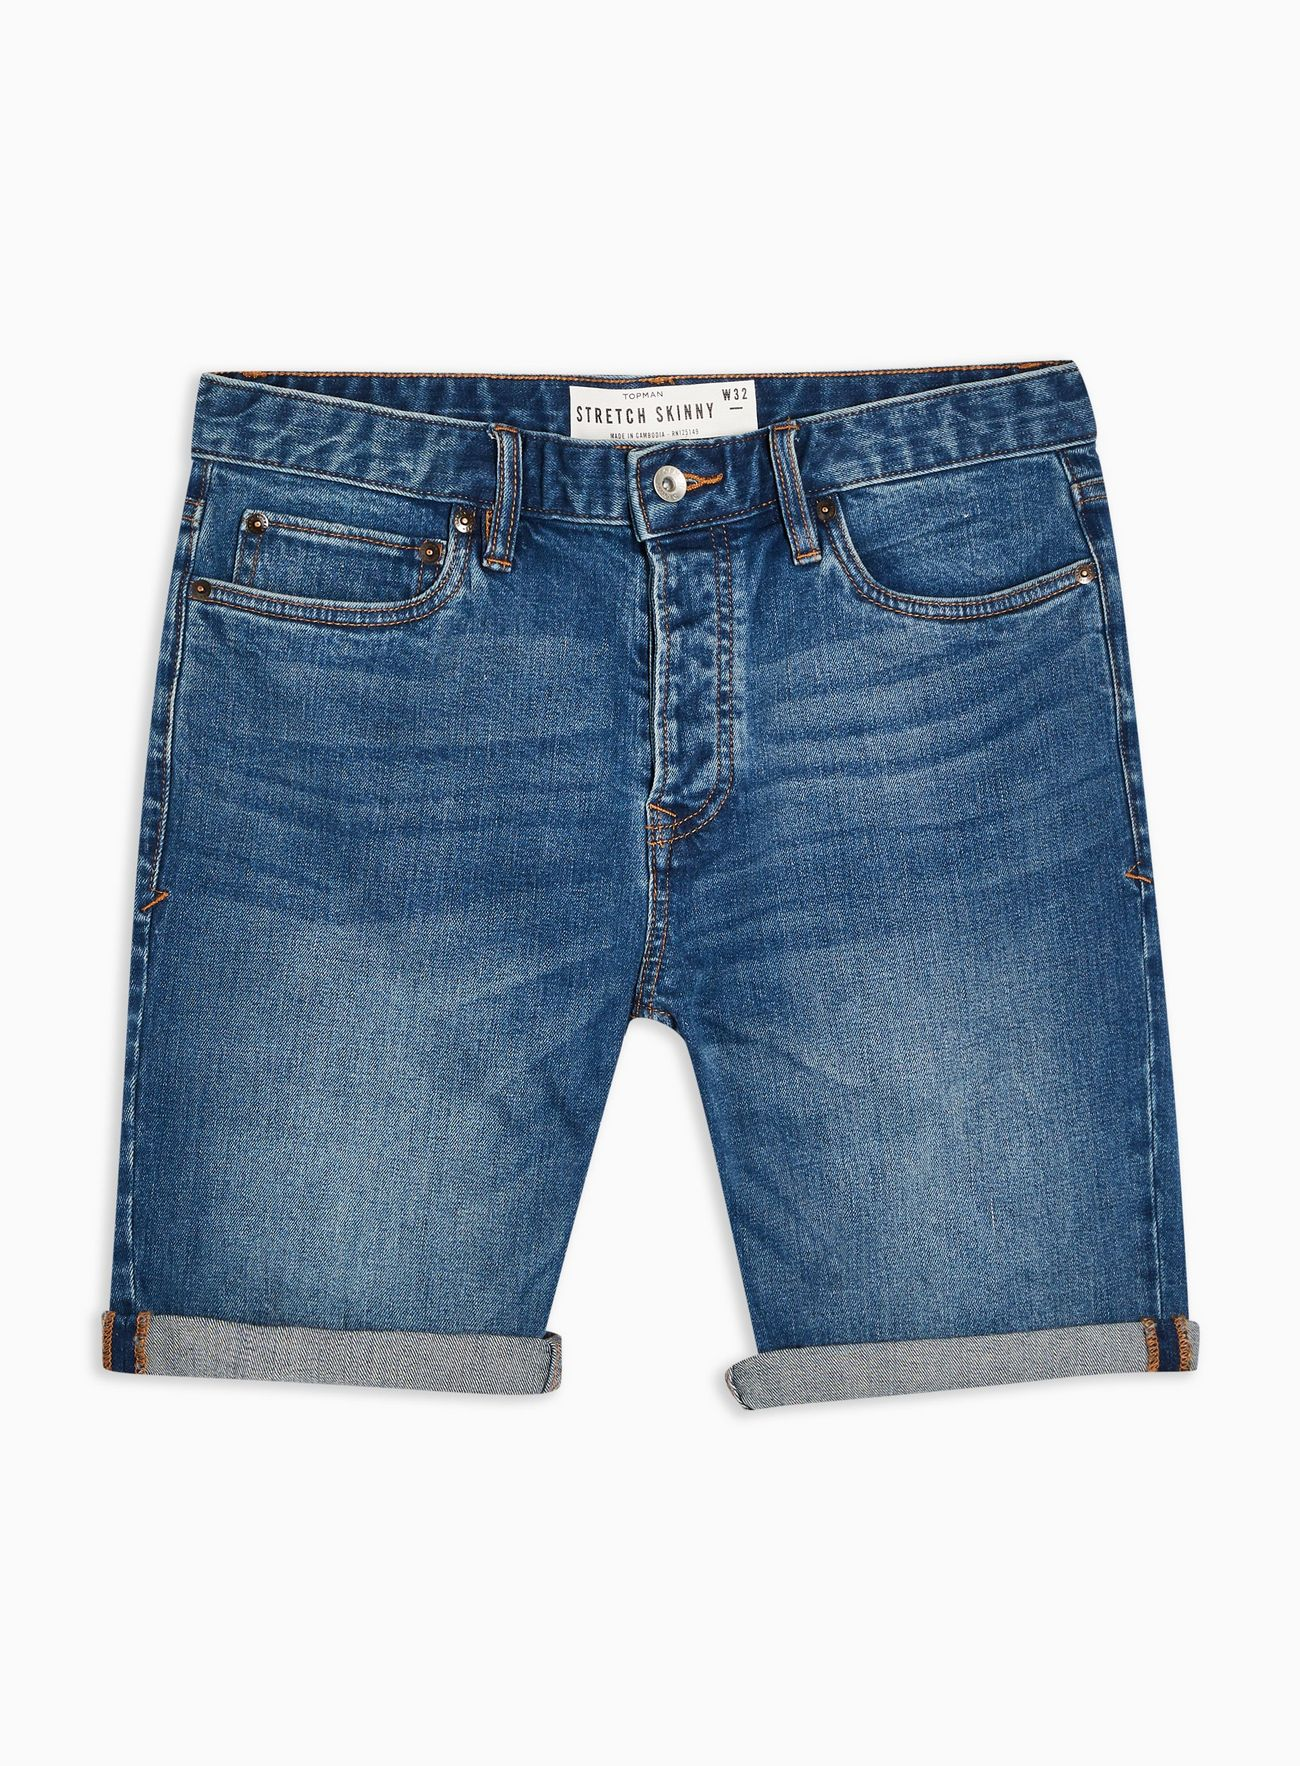 Topman denim shorts - £25 - A must have for the last week of summer